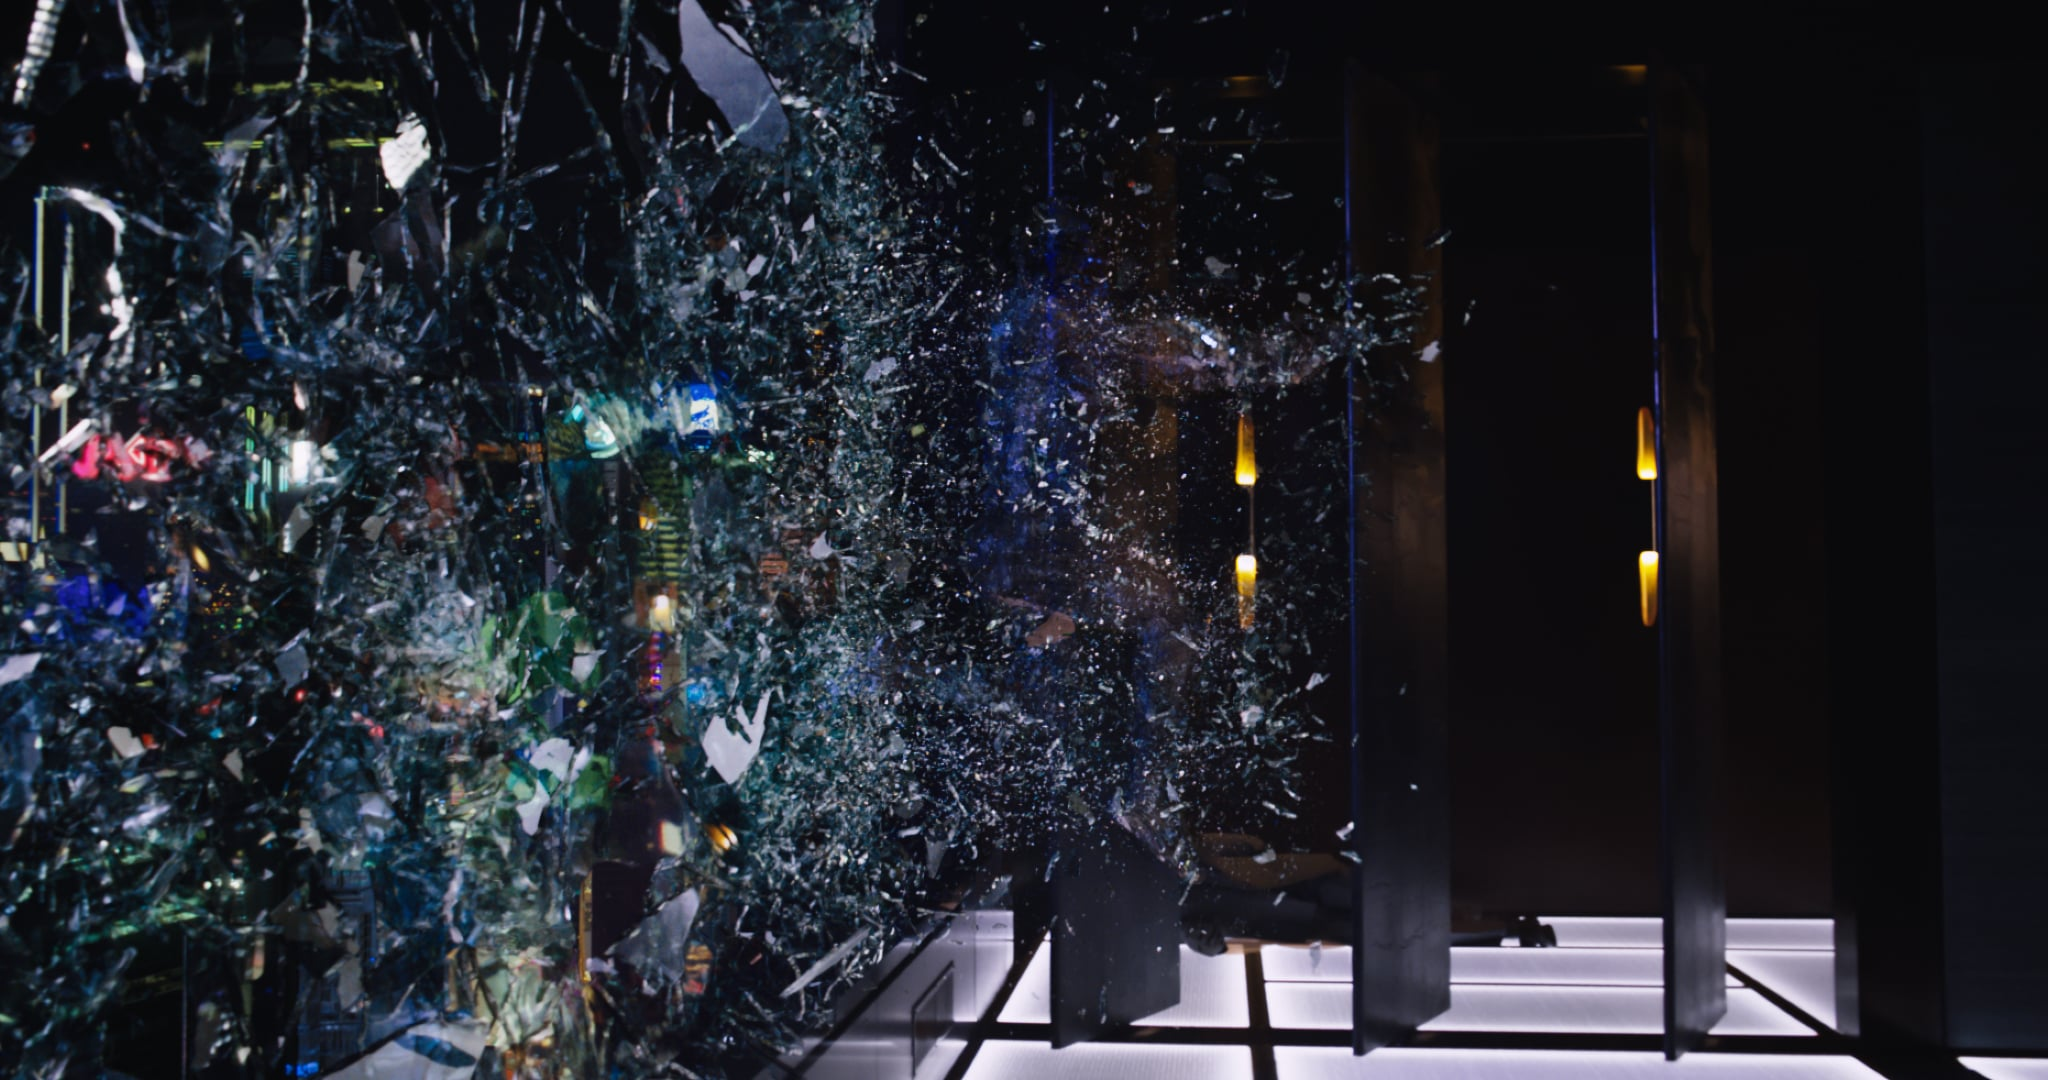 Mpc S Visual Feast For Ghost In The Shell Fxphd